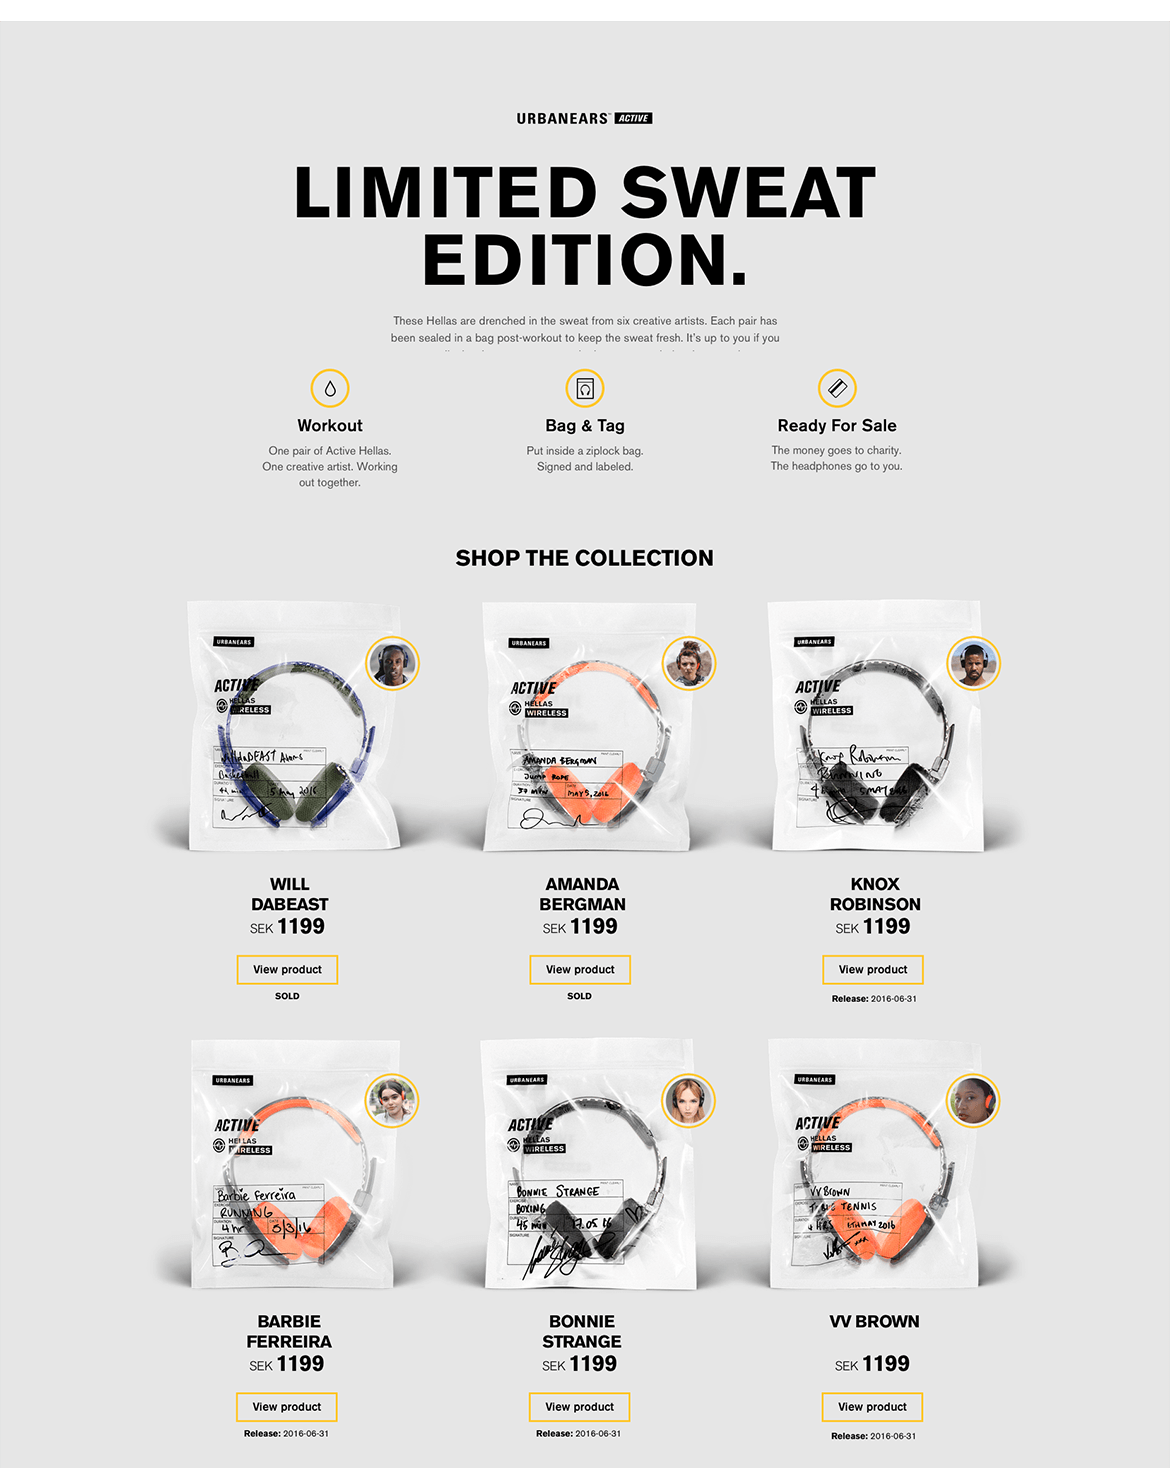 LimitedSweatEdition_website